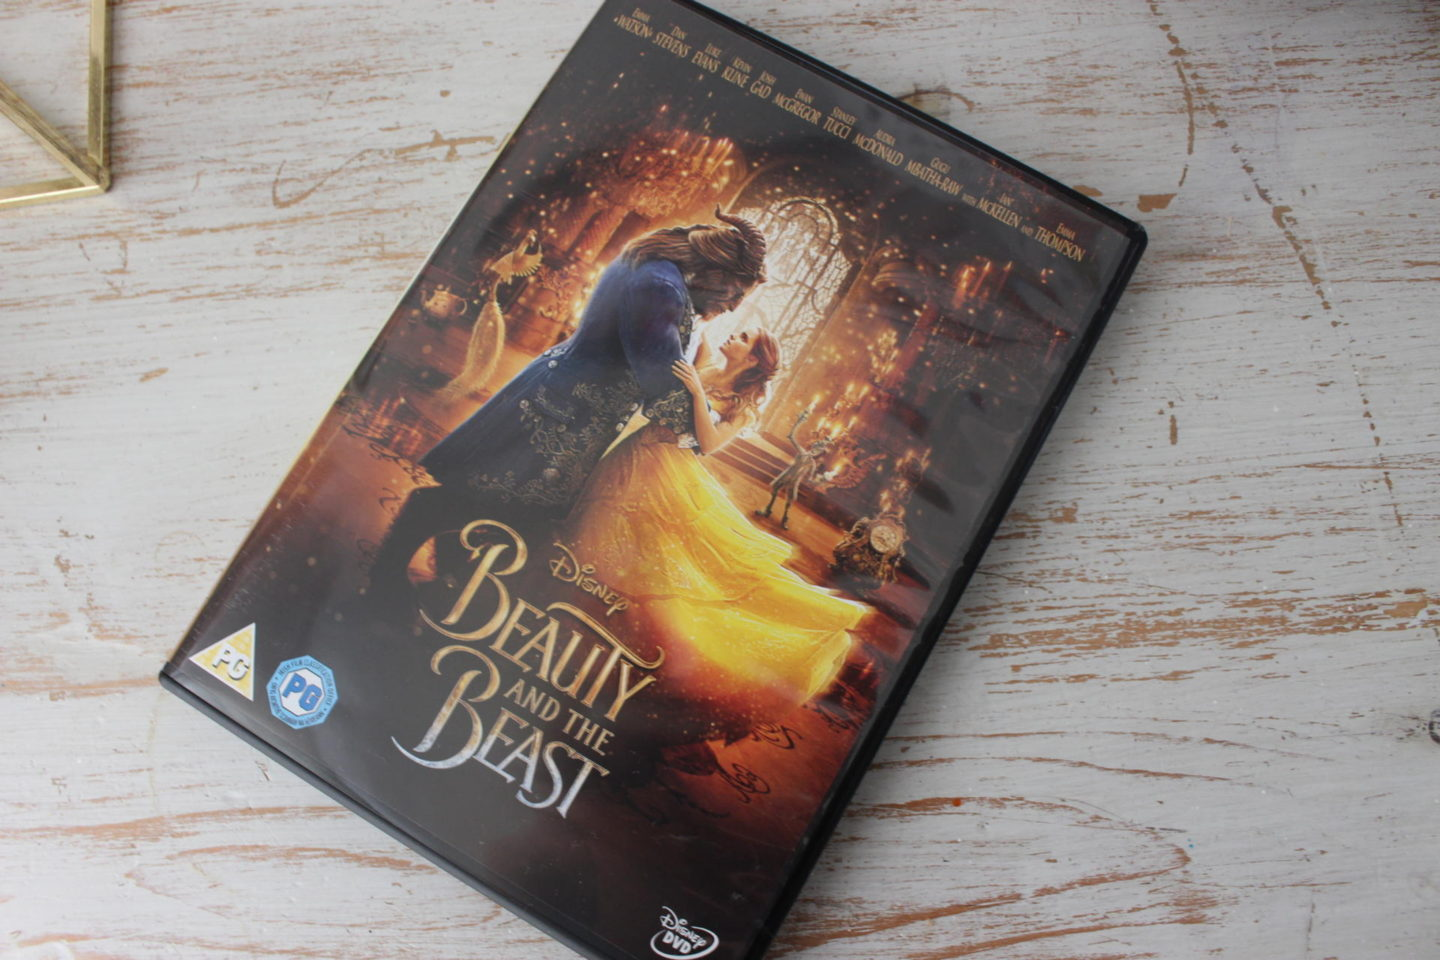 Beauty & The Beast on DVD